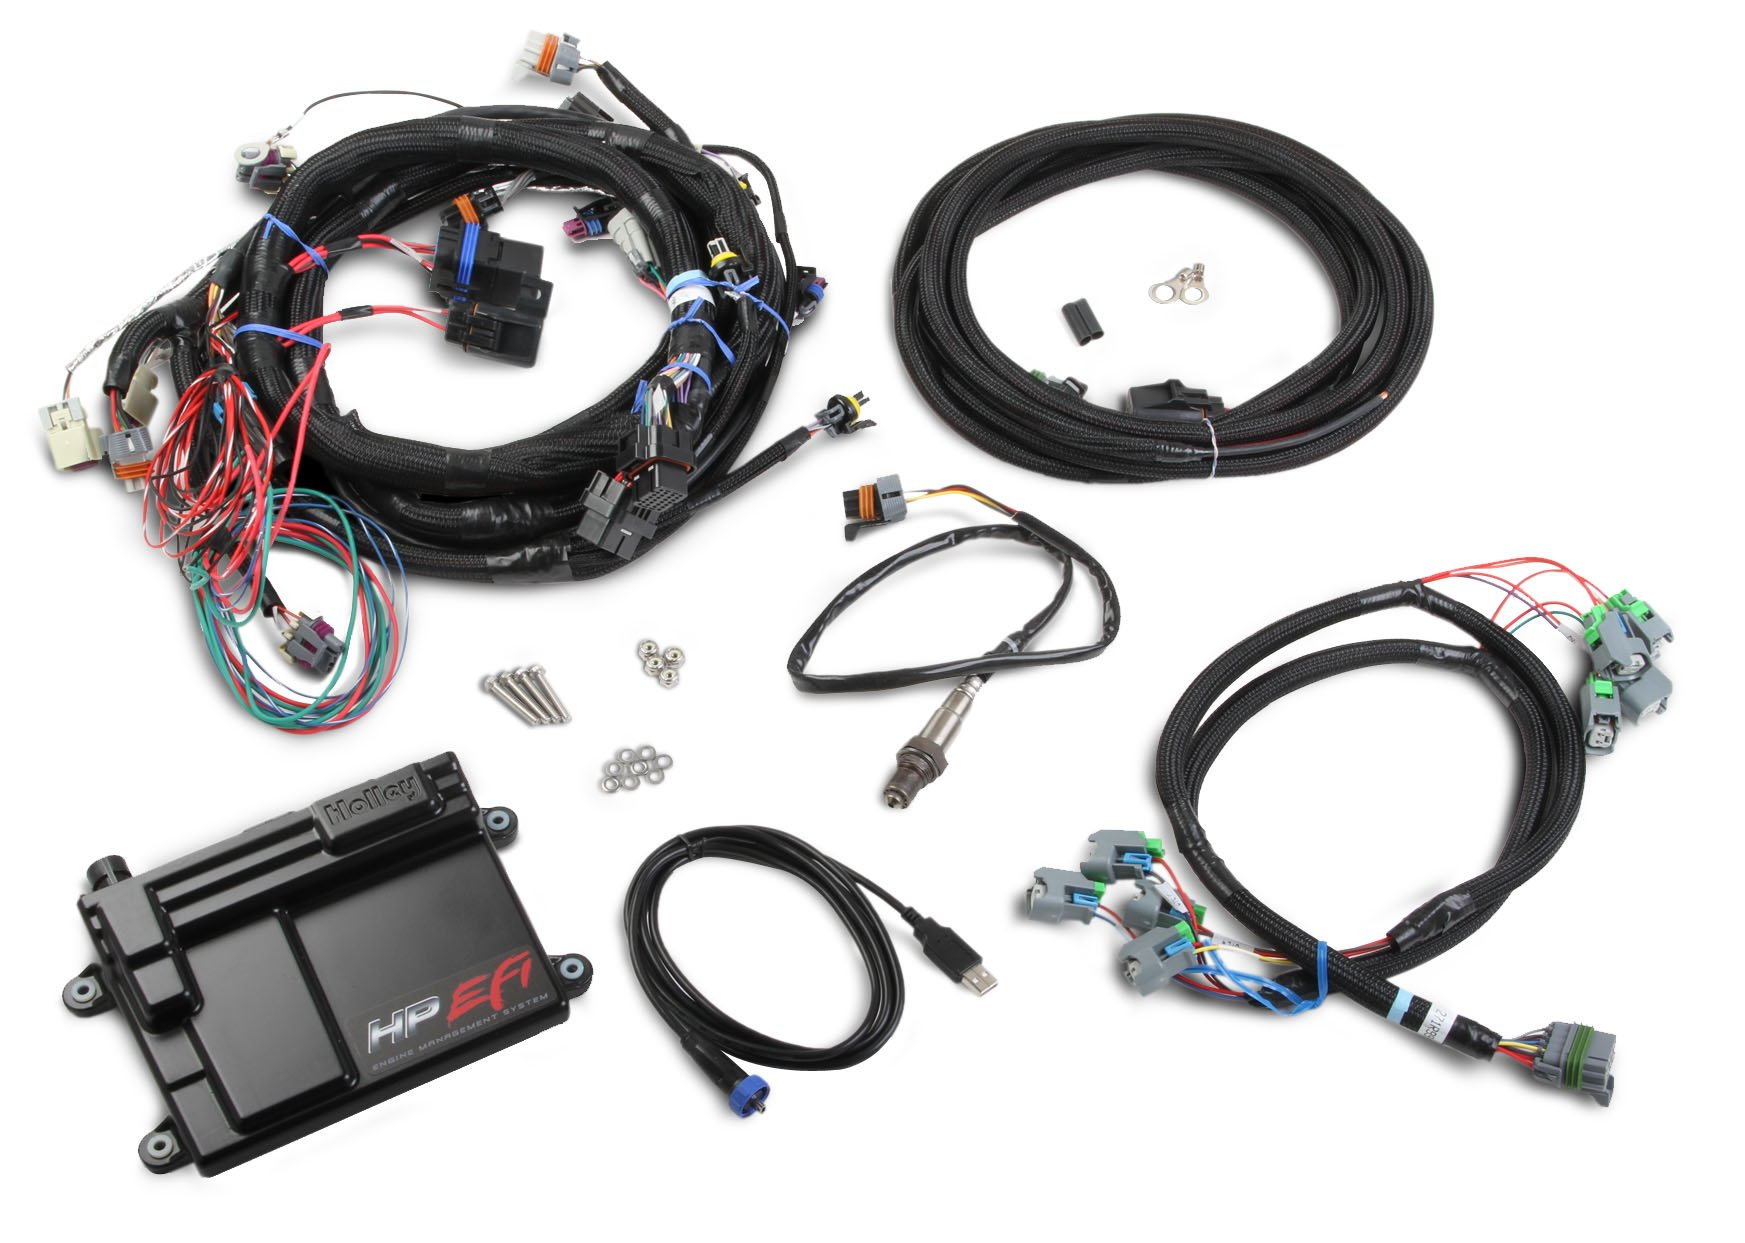 550 603 holley efi 550 603 hp efi ecu & harness kits street and performance wiring harness at virtualis.co